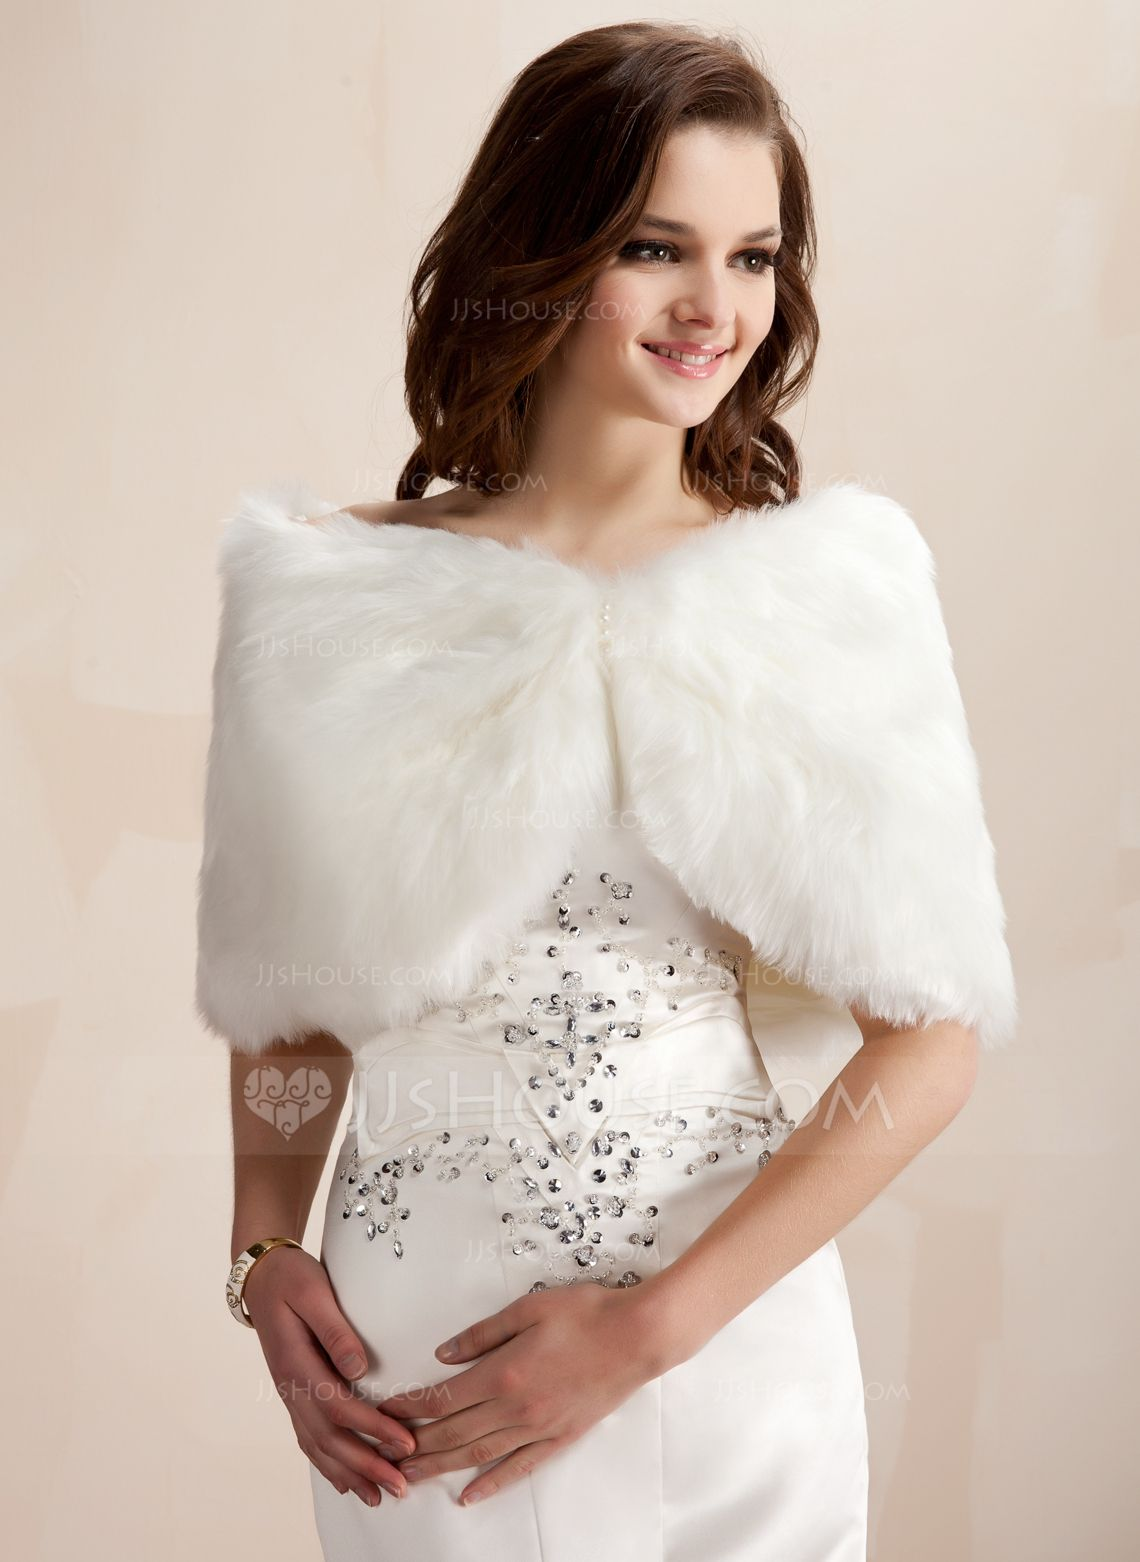 2b39c17d7 JJsHouse, as the global leading online retailer, provides a large variety  of wedding dresses, wedding party dresses, special occasion dresses, ...